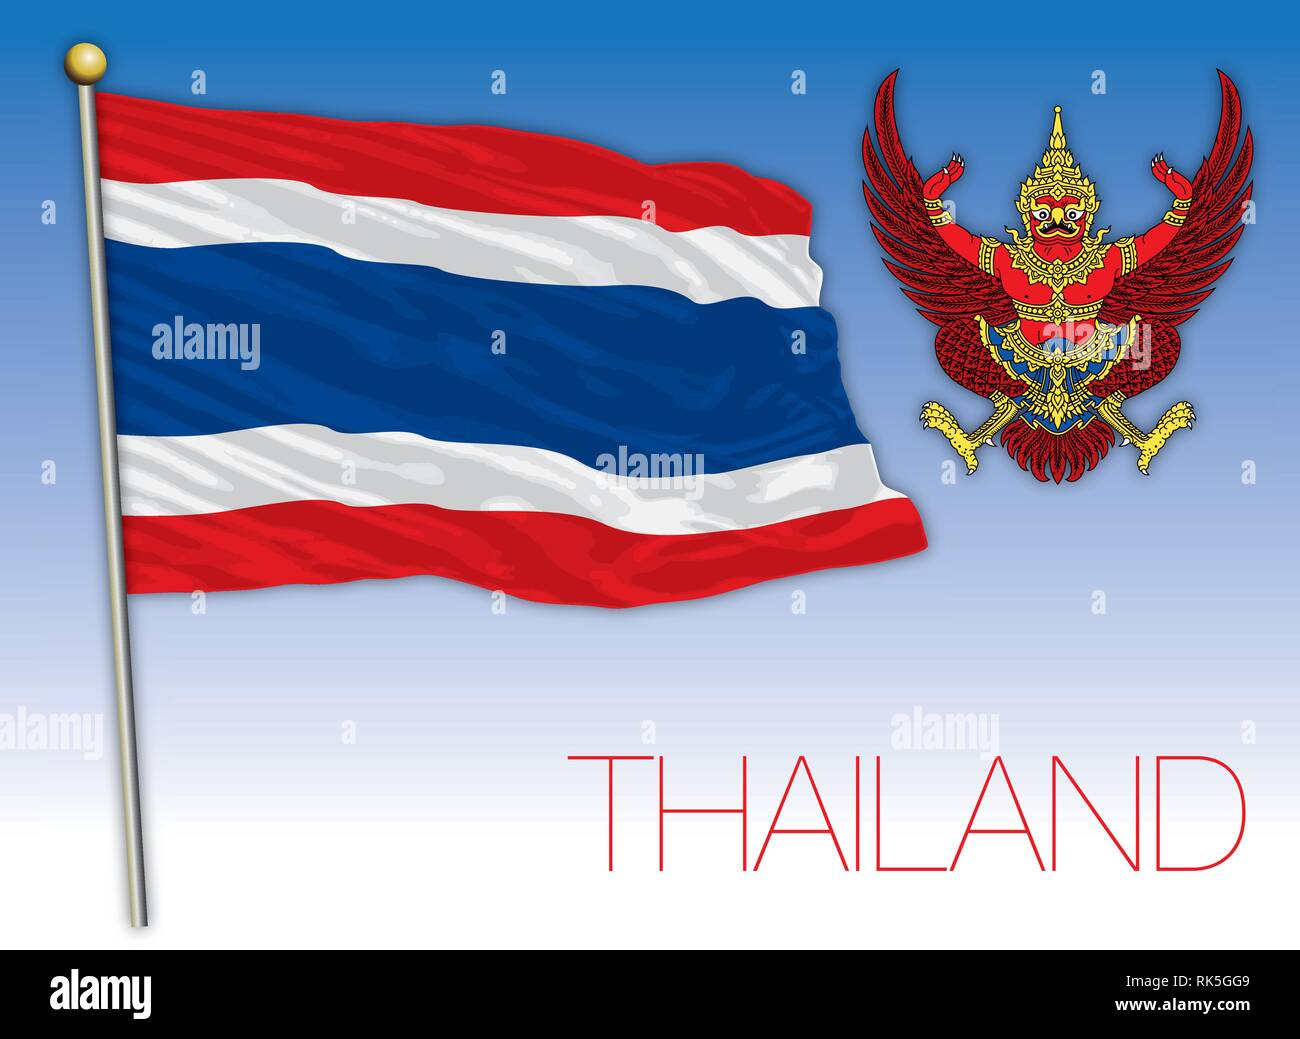 Thailand coat of arms and national flag - Stock Vector